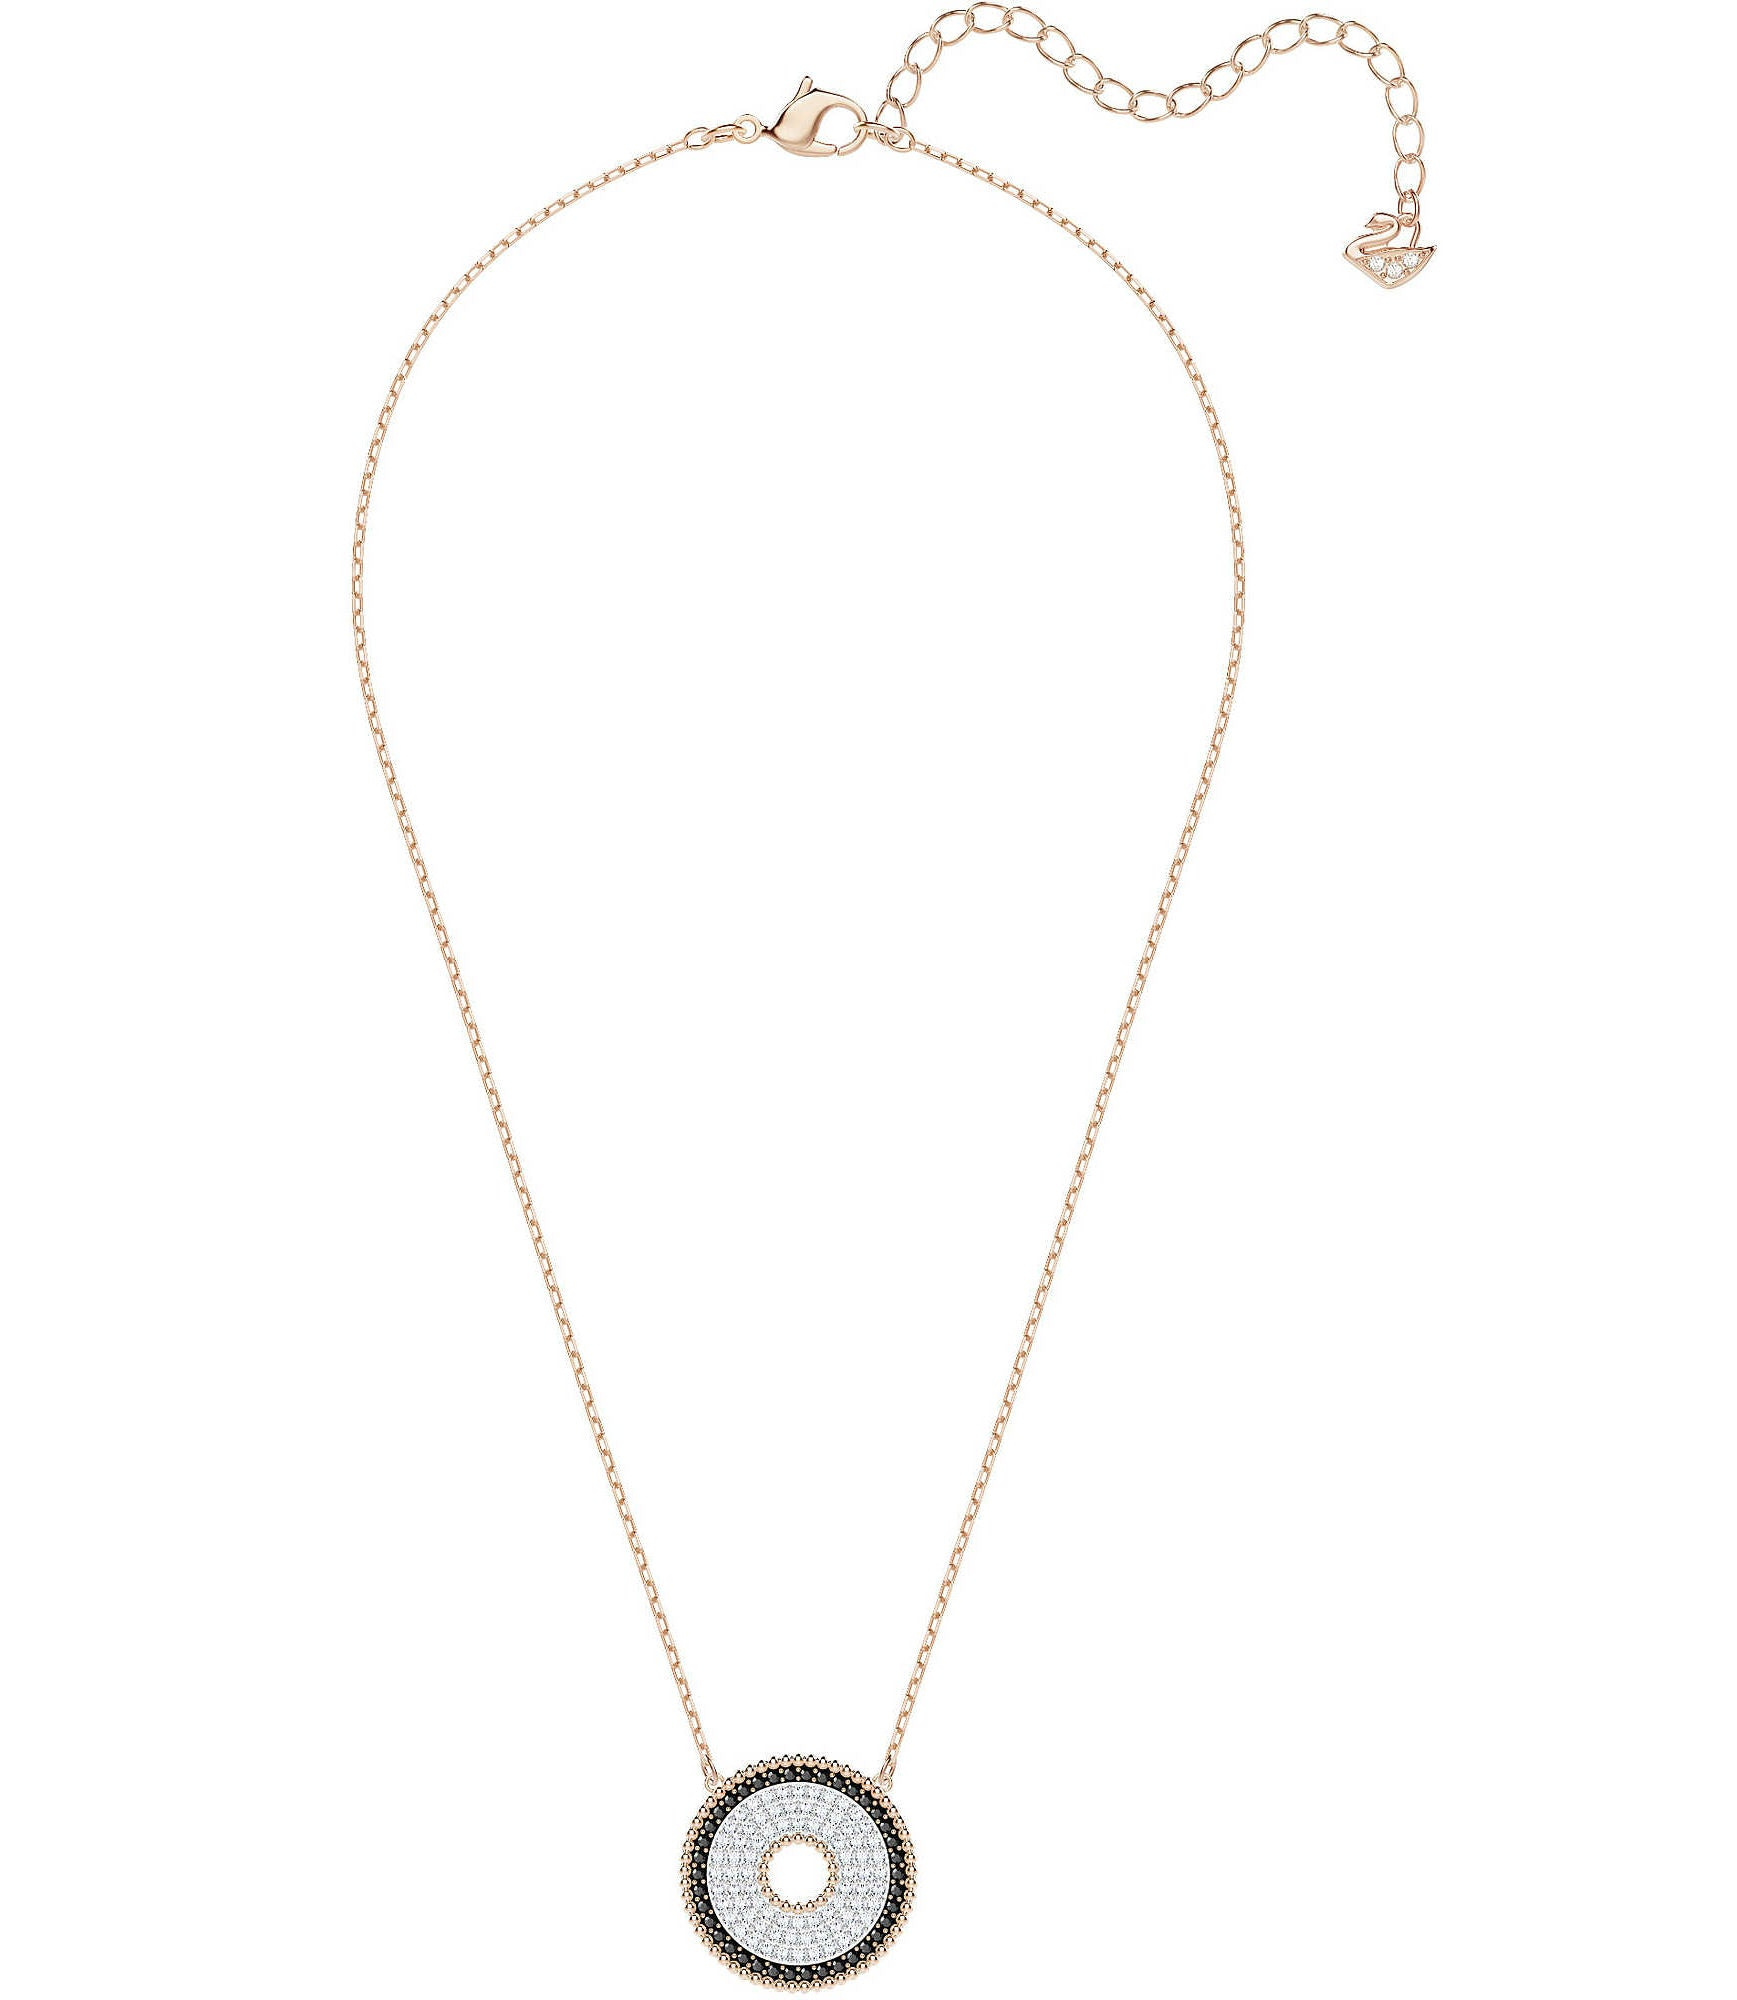 SWAROVSKI LOLLYPOP NECKLACE, BLACK, ROSE GOLD PLATING